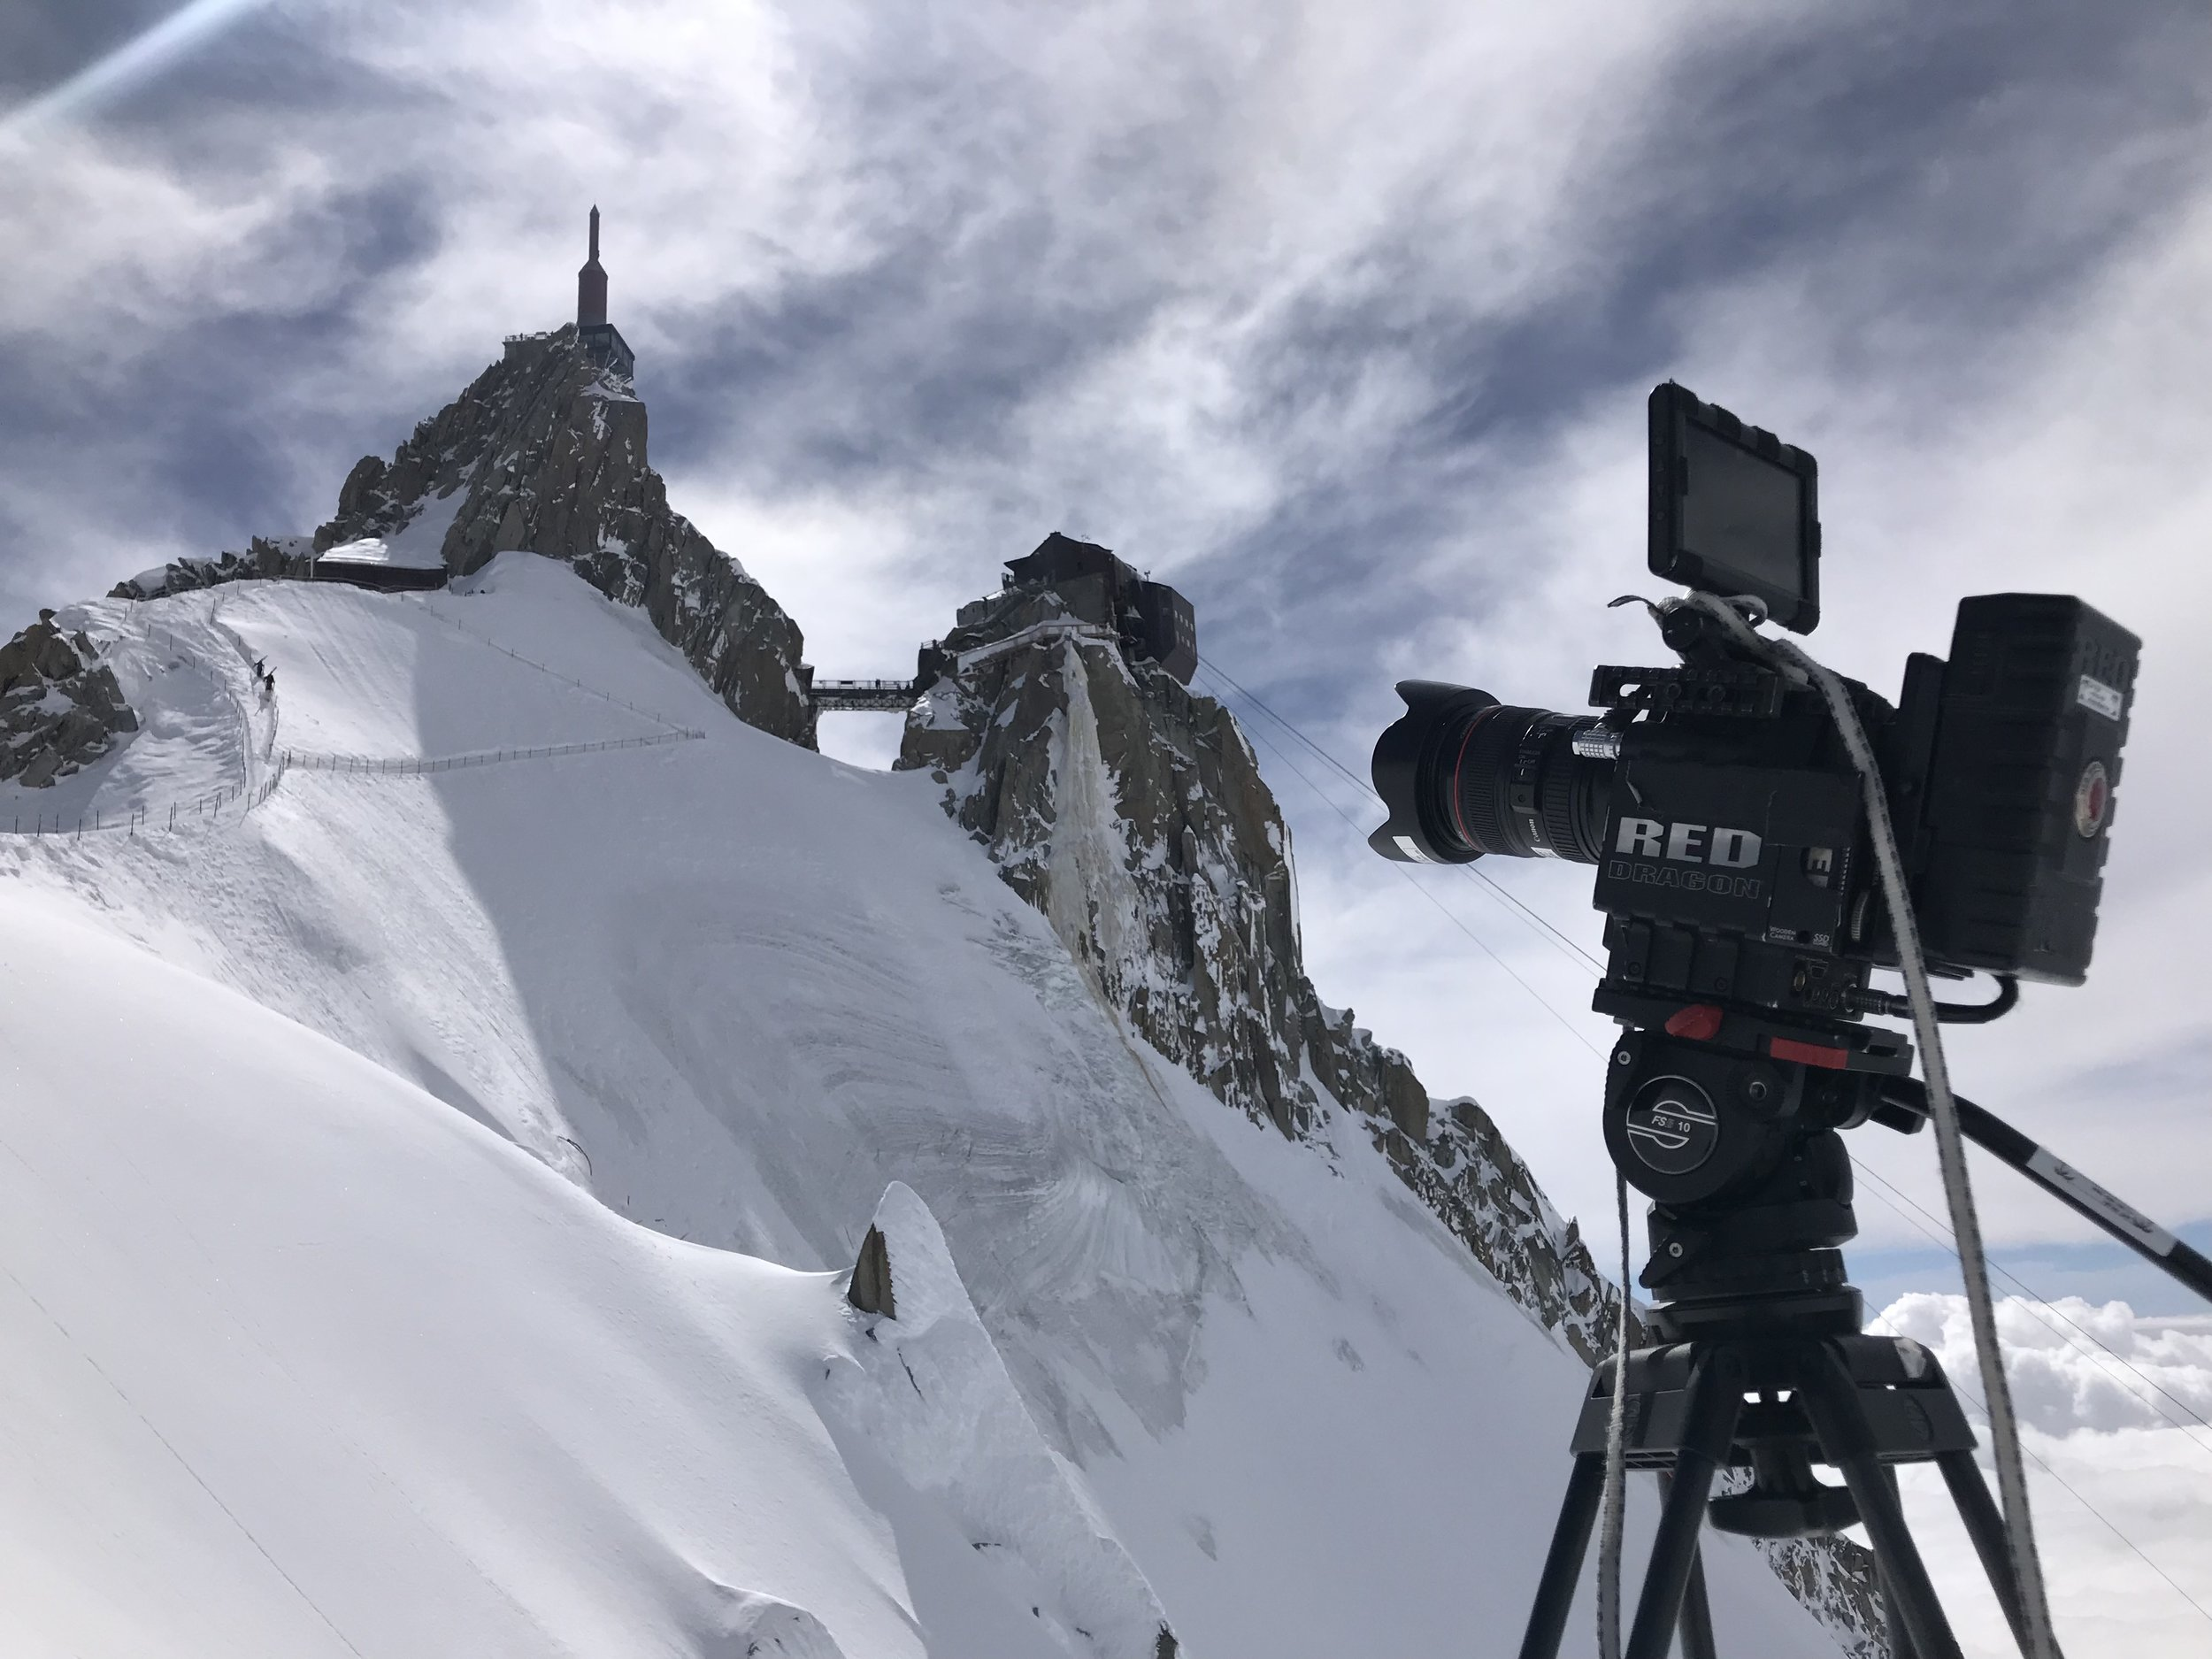 Jeff owns his own RED Epic Dragon package capable of high speed slow motion and resolutions up to 6K. The gear list also includes professional audio and lighting kits.